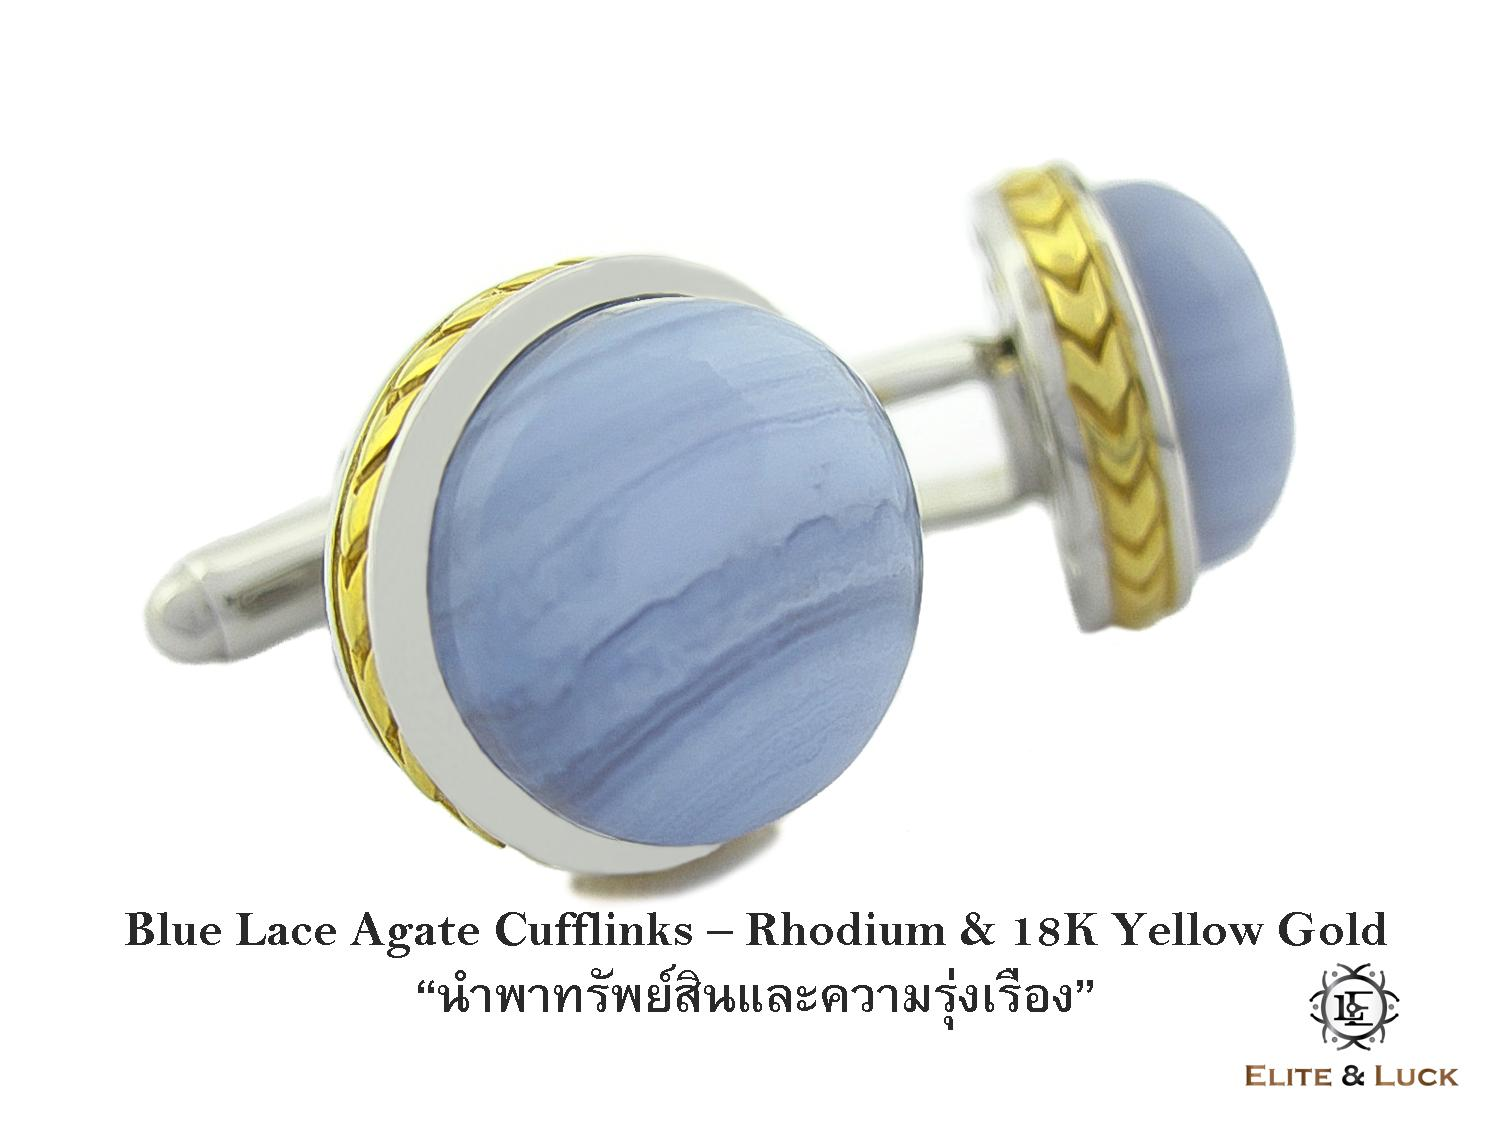 Blue Lace Agate Sterling Silver Cufflinks สี Rhodium & 18K Yellow Gold รุ่น Limited